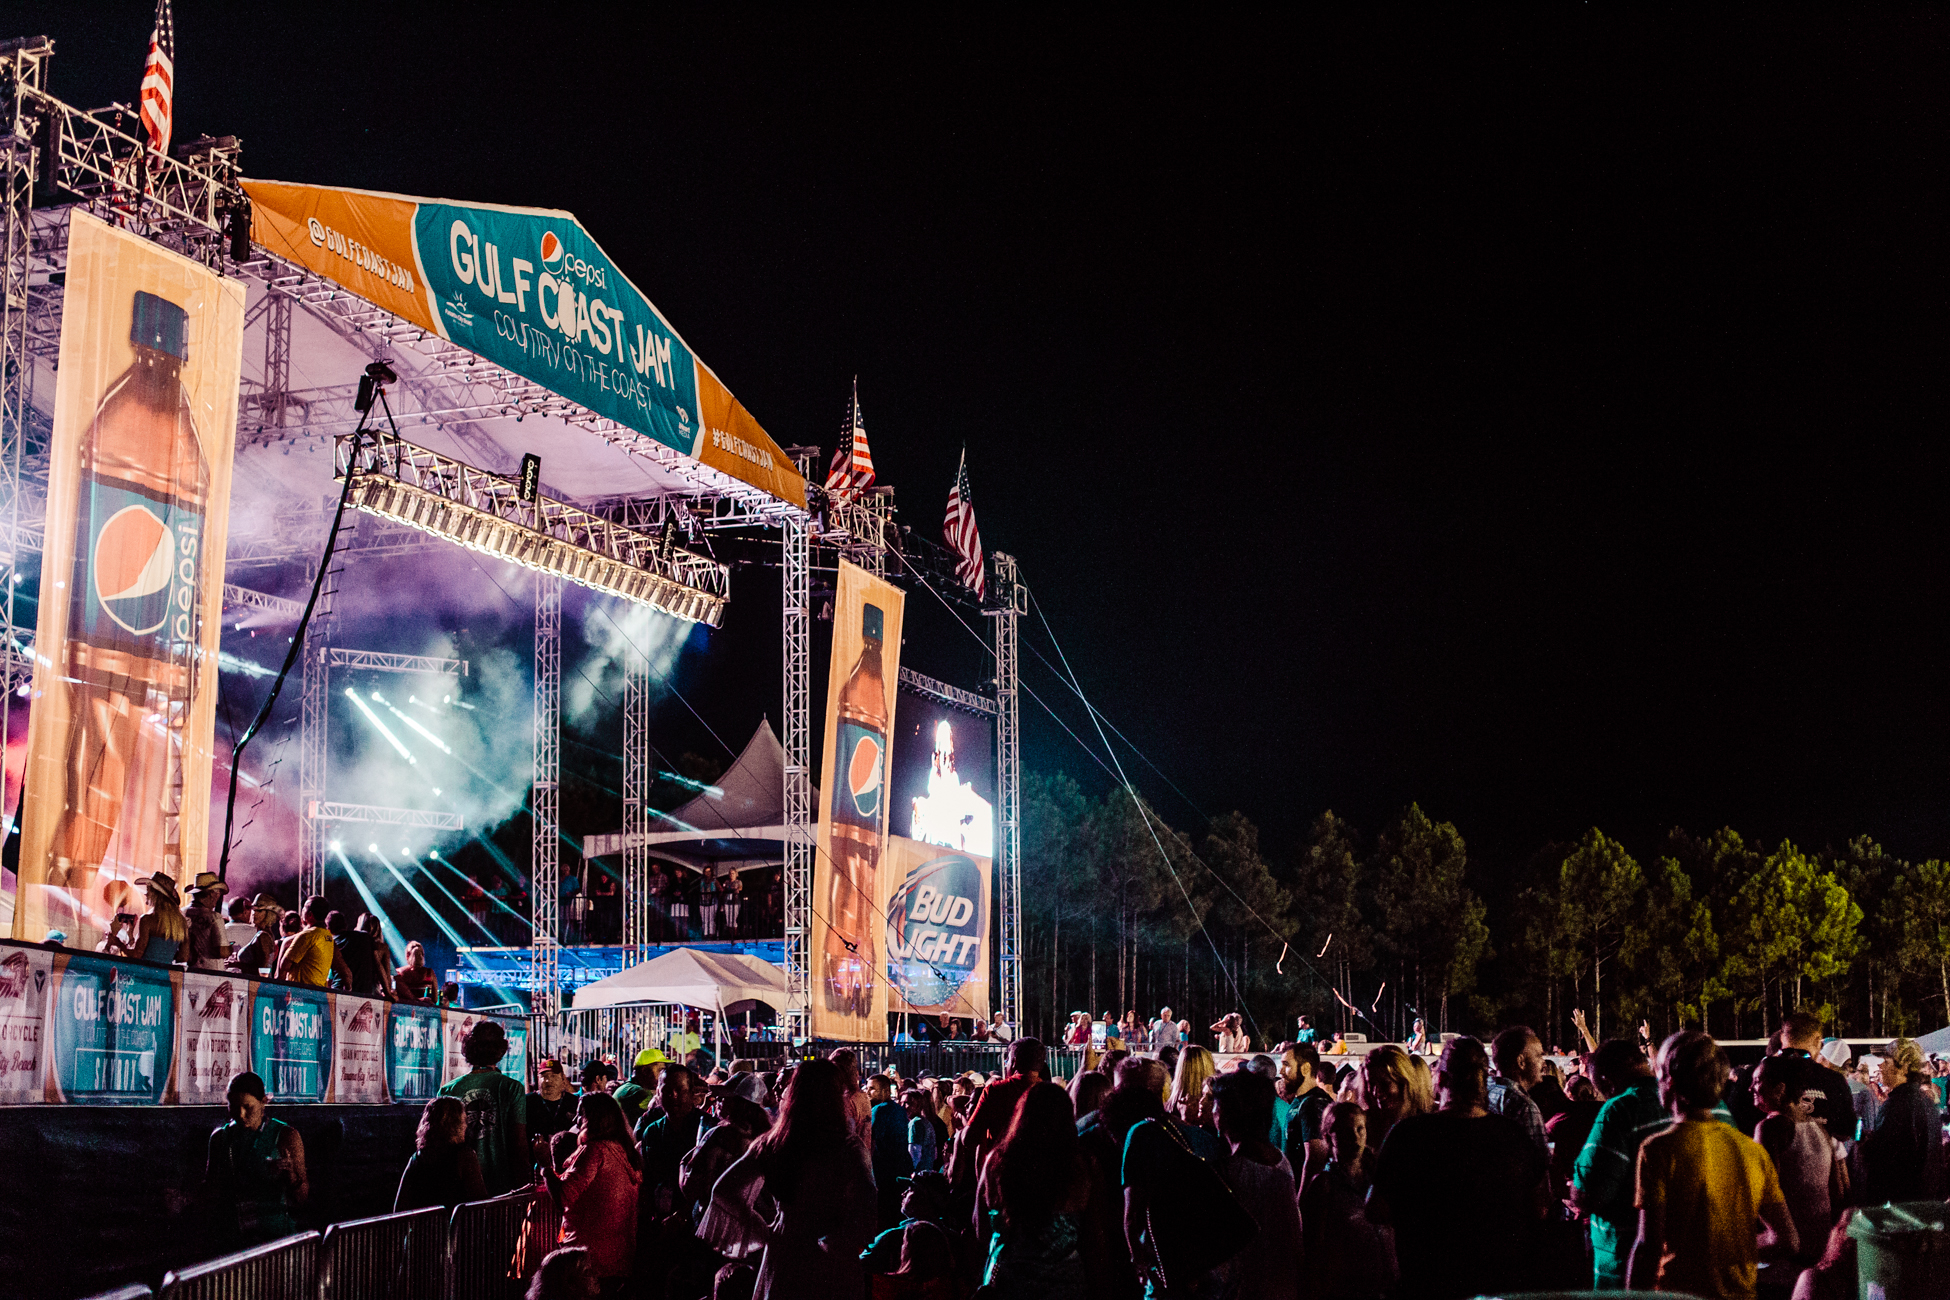 Panama City Beach Events   Search Our Calendar For Things To Do For Panama City Beach Concerts February 2021